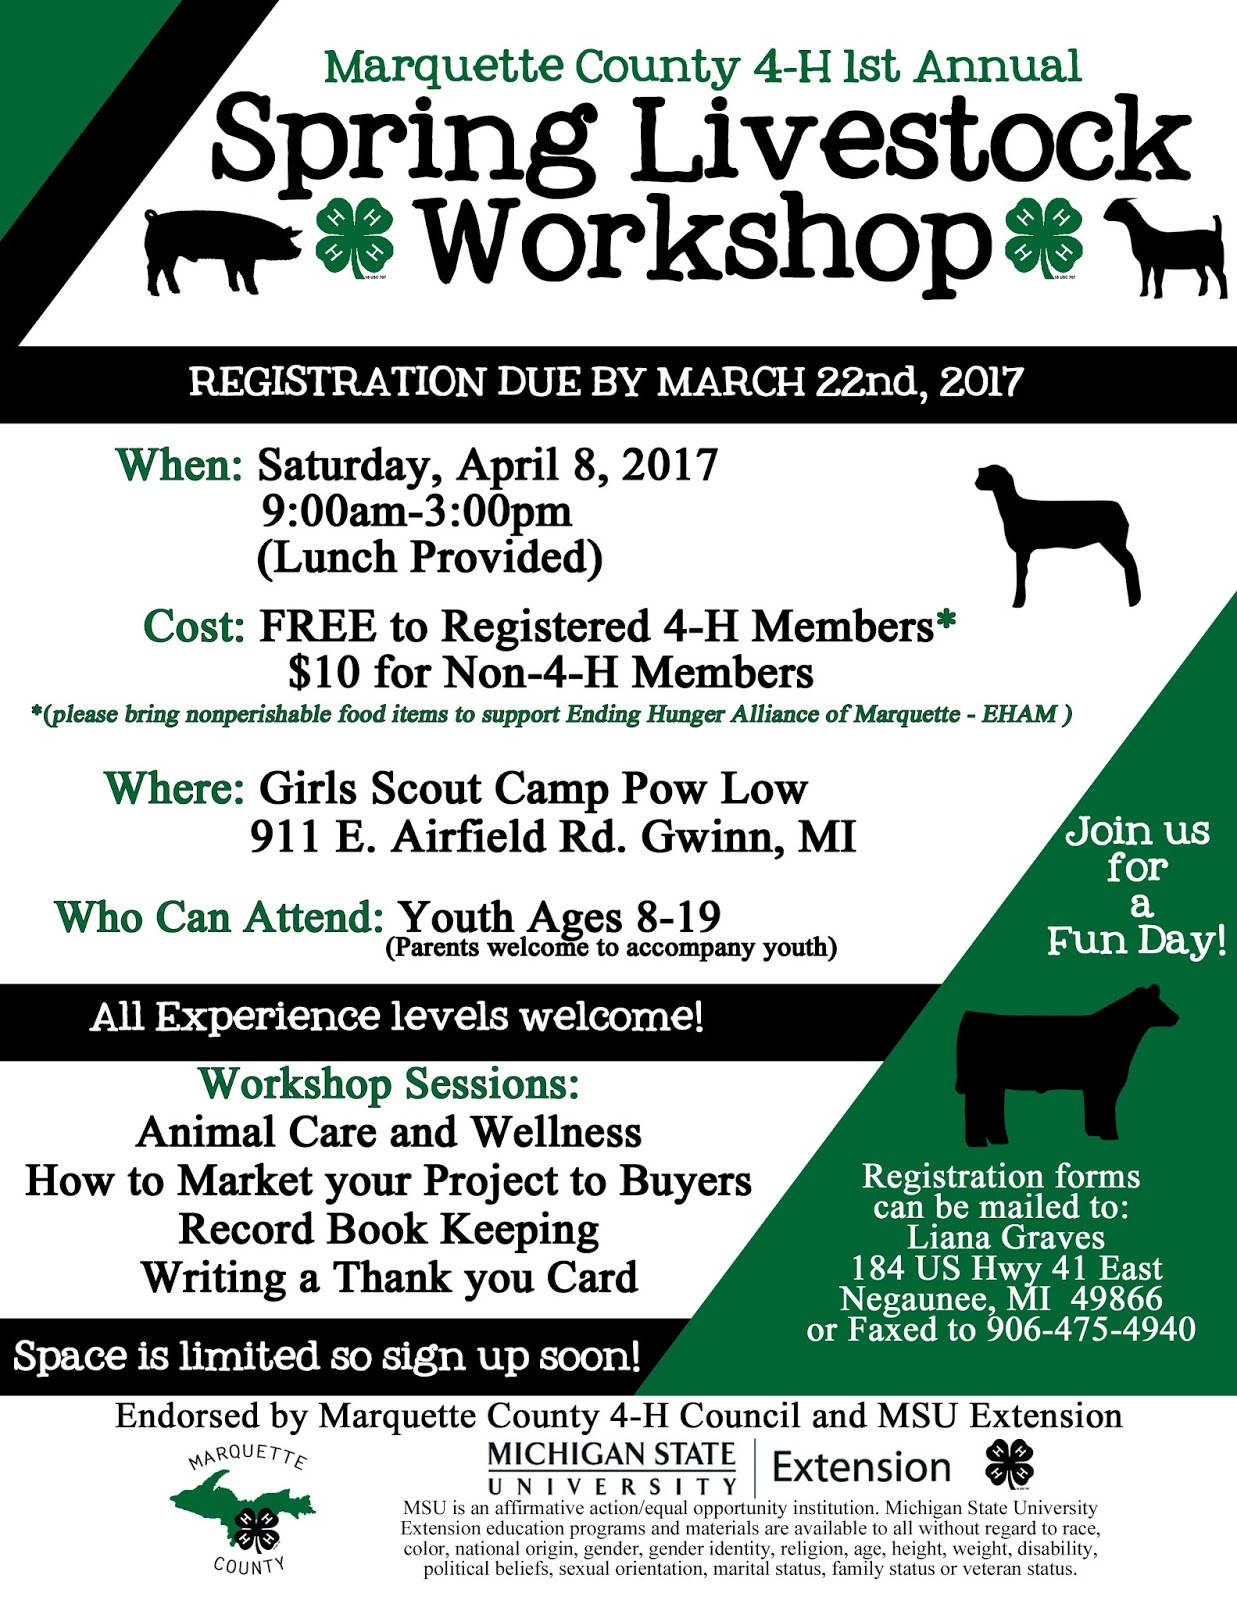 Michigan marquette county gwinn - Marquette County 4 H First Annual Spring Livestock Workshop